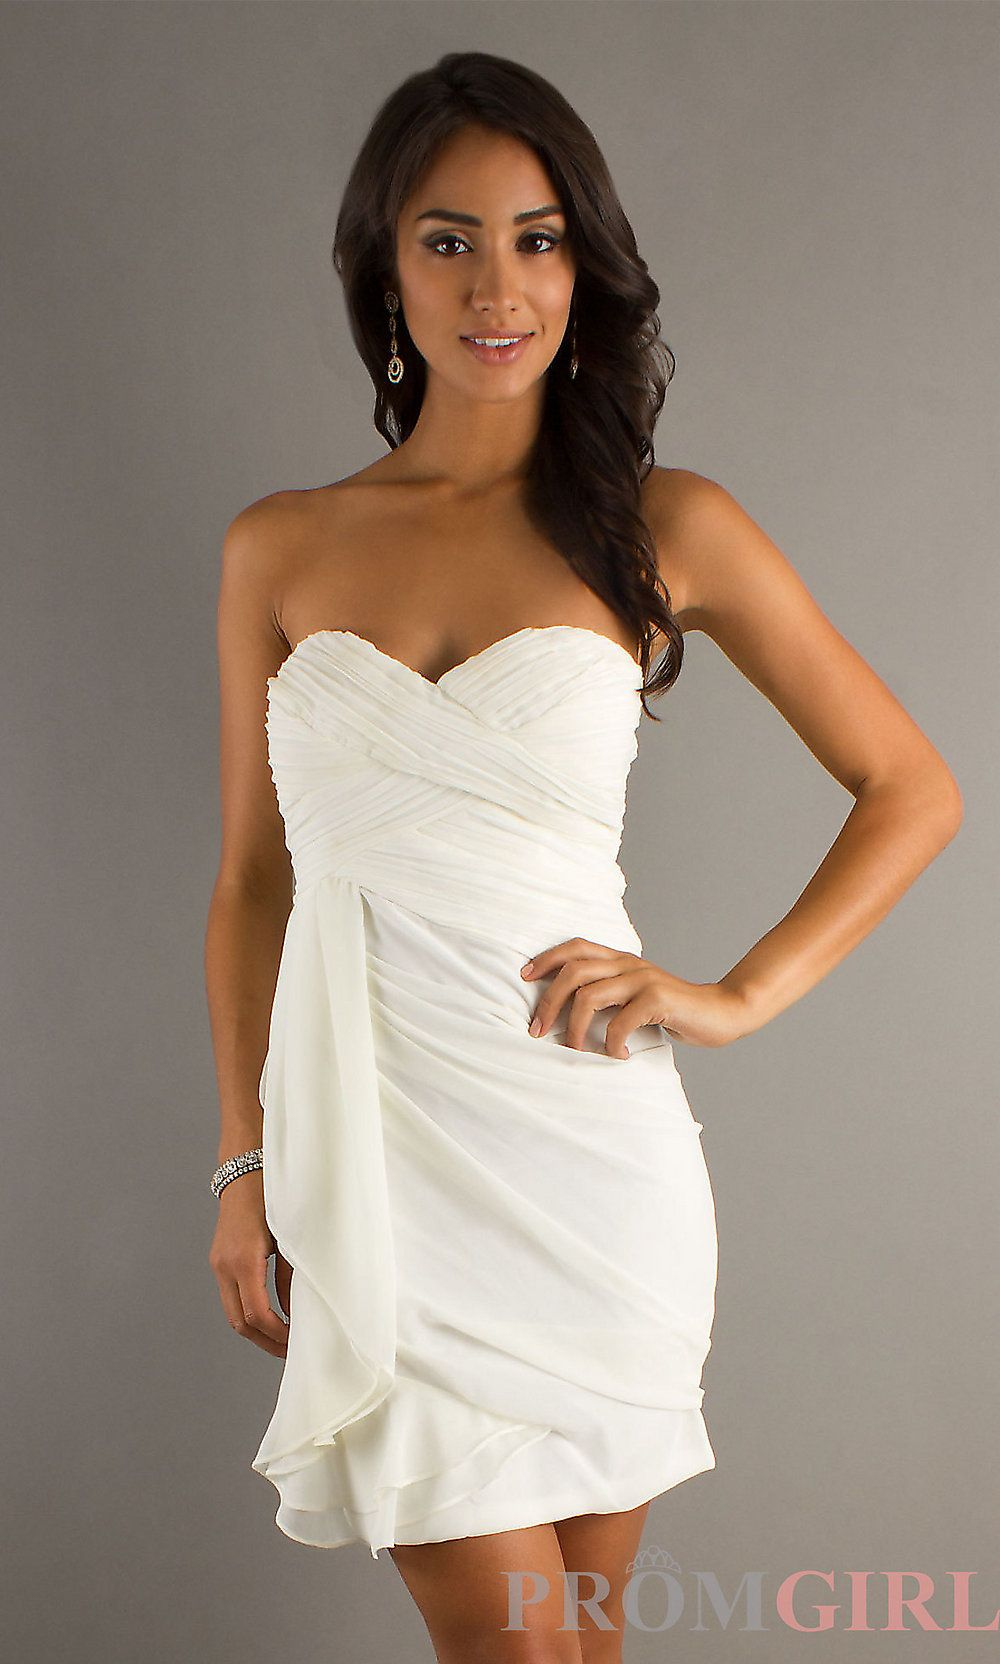 17 Best images about White dresses on Pinterest - Cute white dress ...